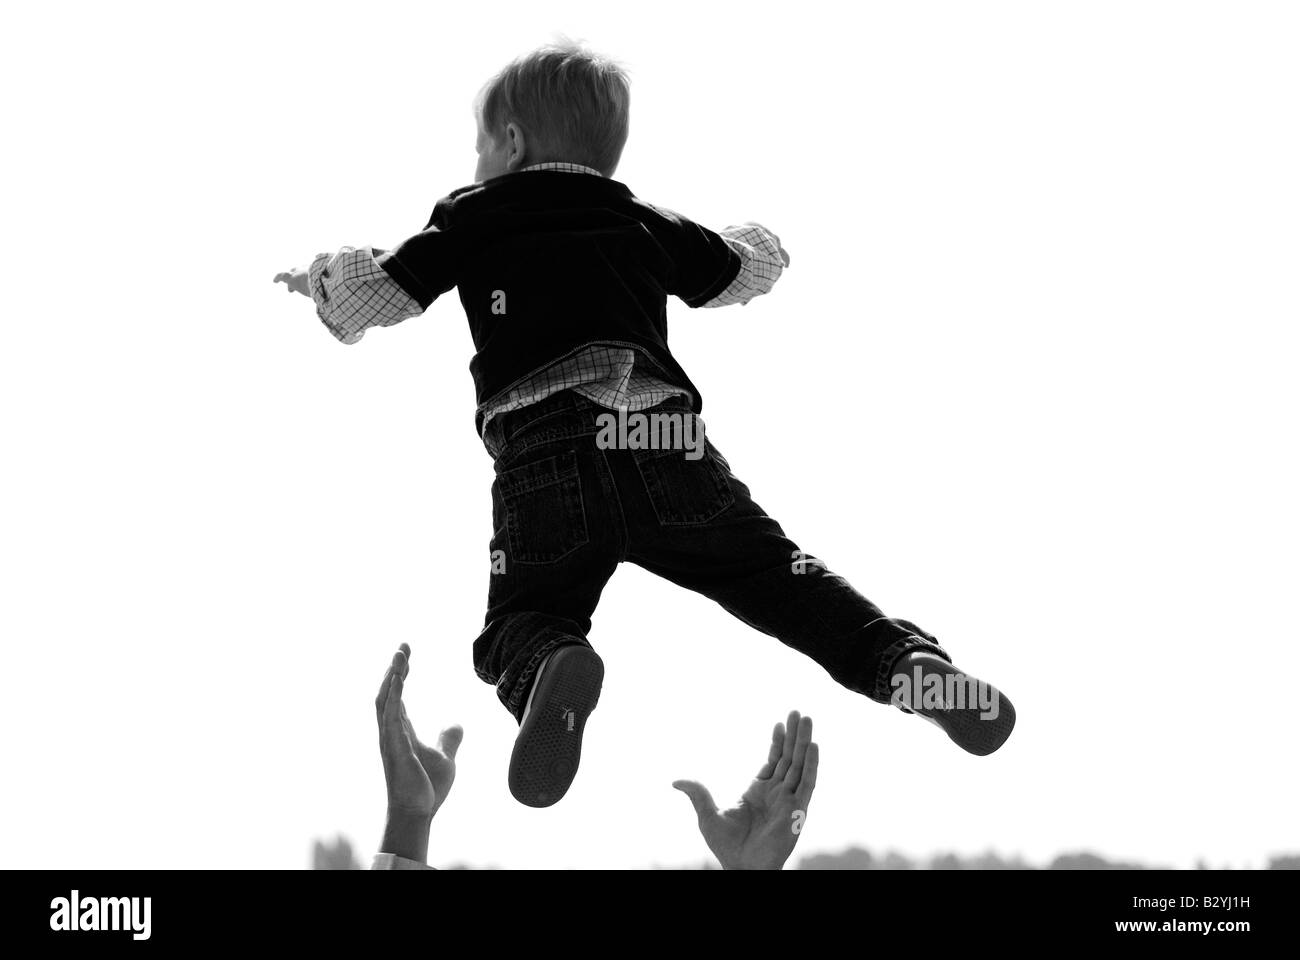 Father's hands catching his son. - Stock Image